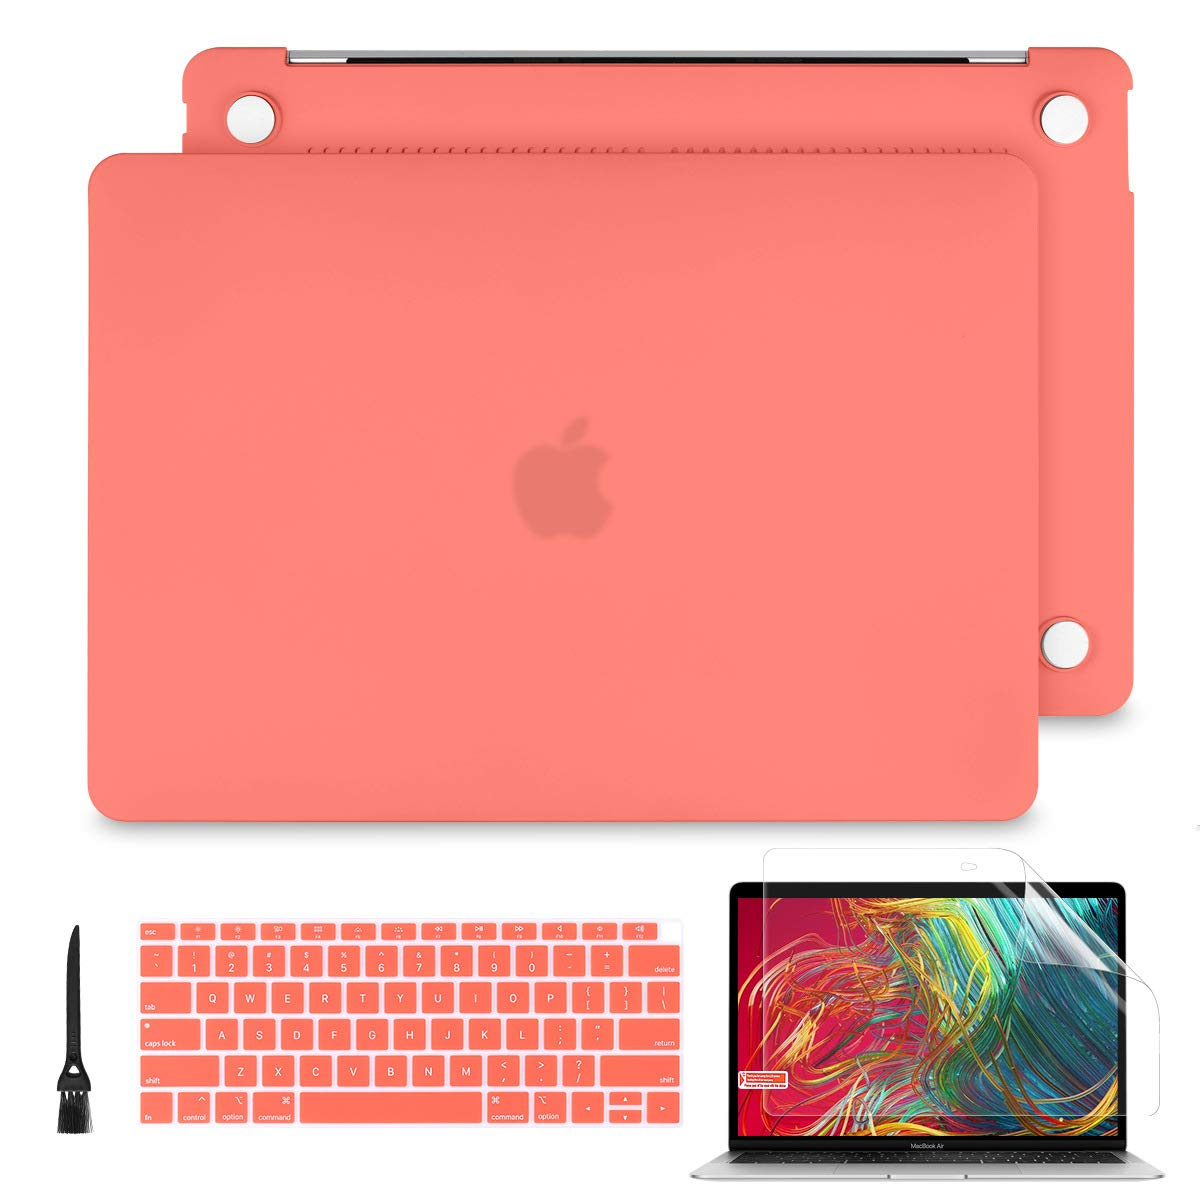 Batianda 2019 2018 MacBook Air 13 A1932 Case, Soft Touch Hard Shell Cover for New MacBook Air 13.3 Inch with Retina Display Touch ID with Keyboard Skin & Screen Portoector - Living Coral